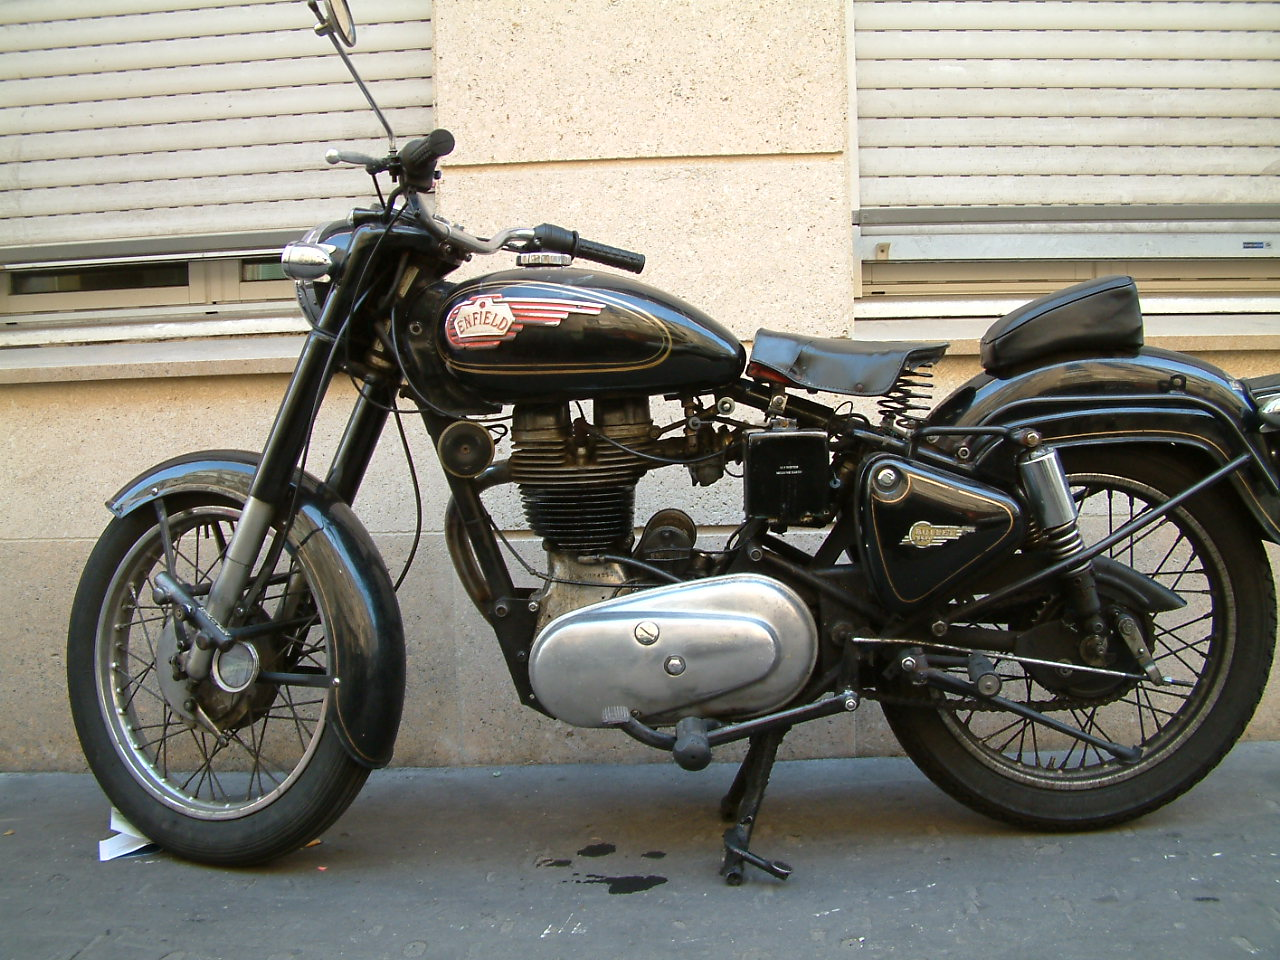 Royal Enfield Bullet 500 Trial Trail 2003 images #123211